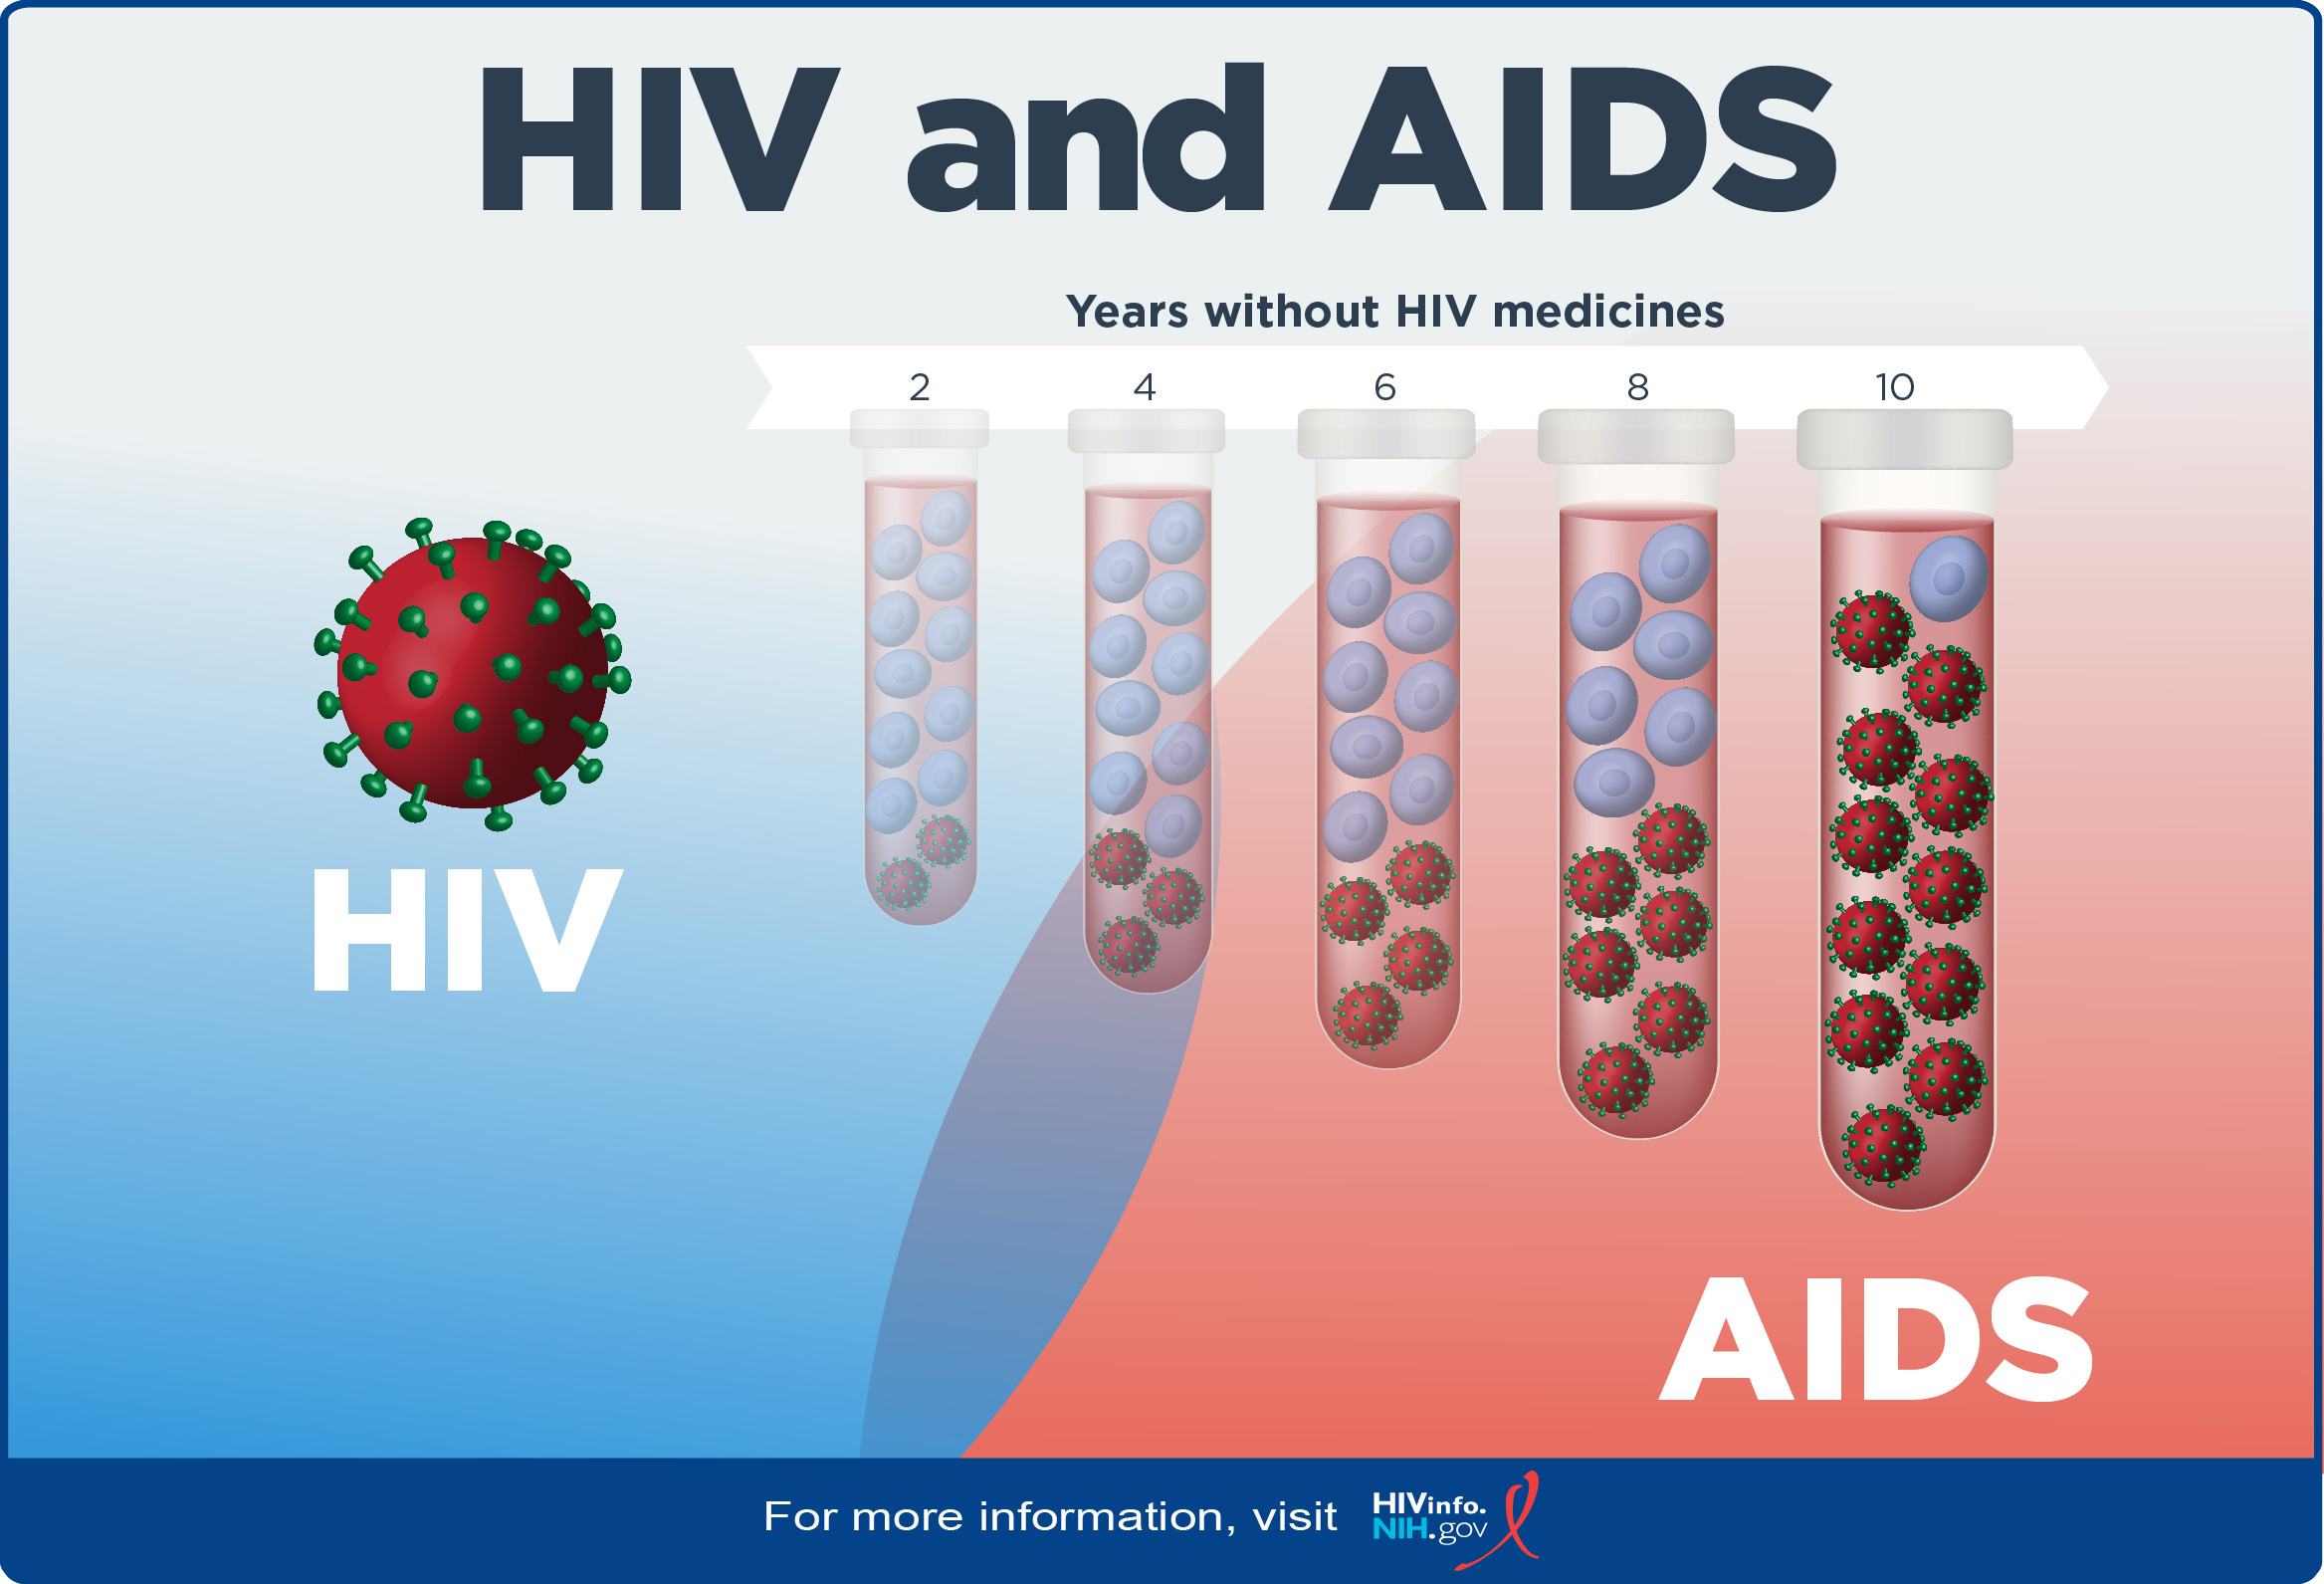 Clarifying HIV and AIDS